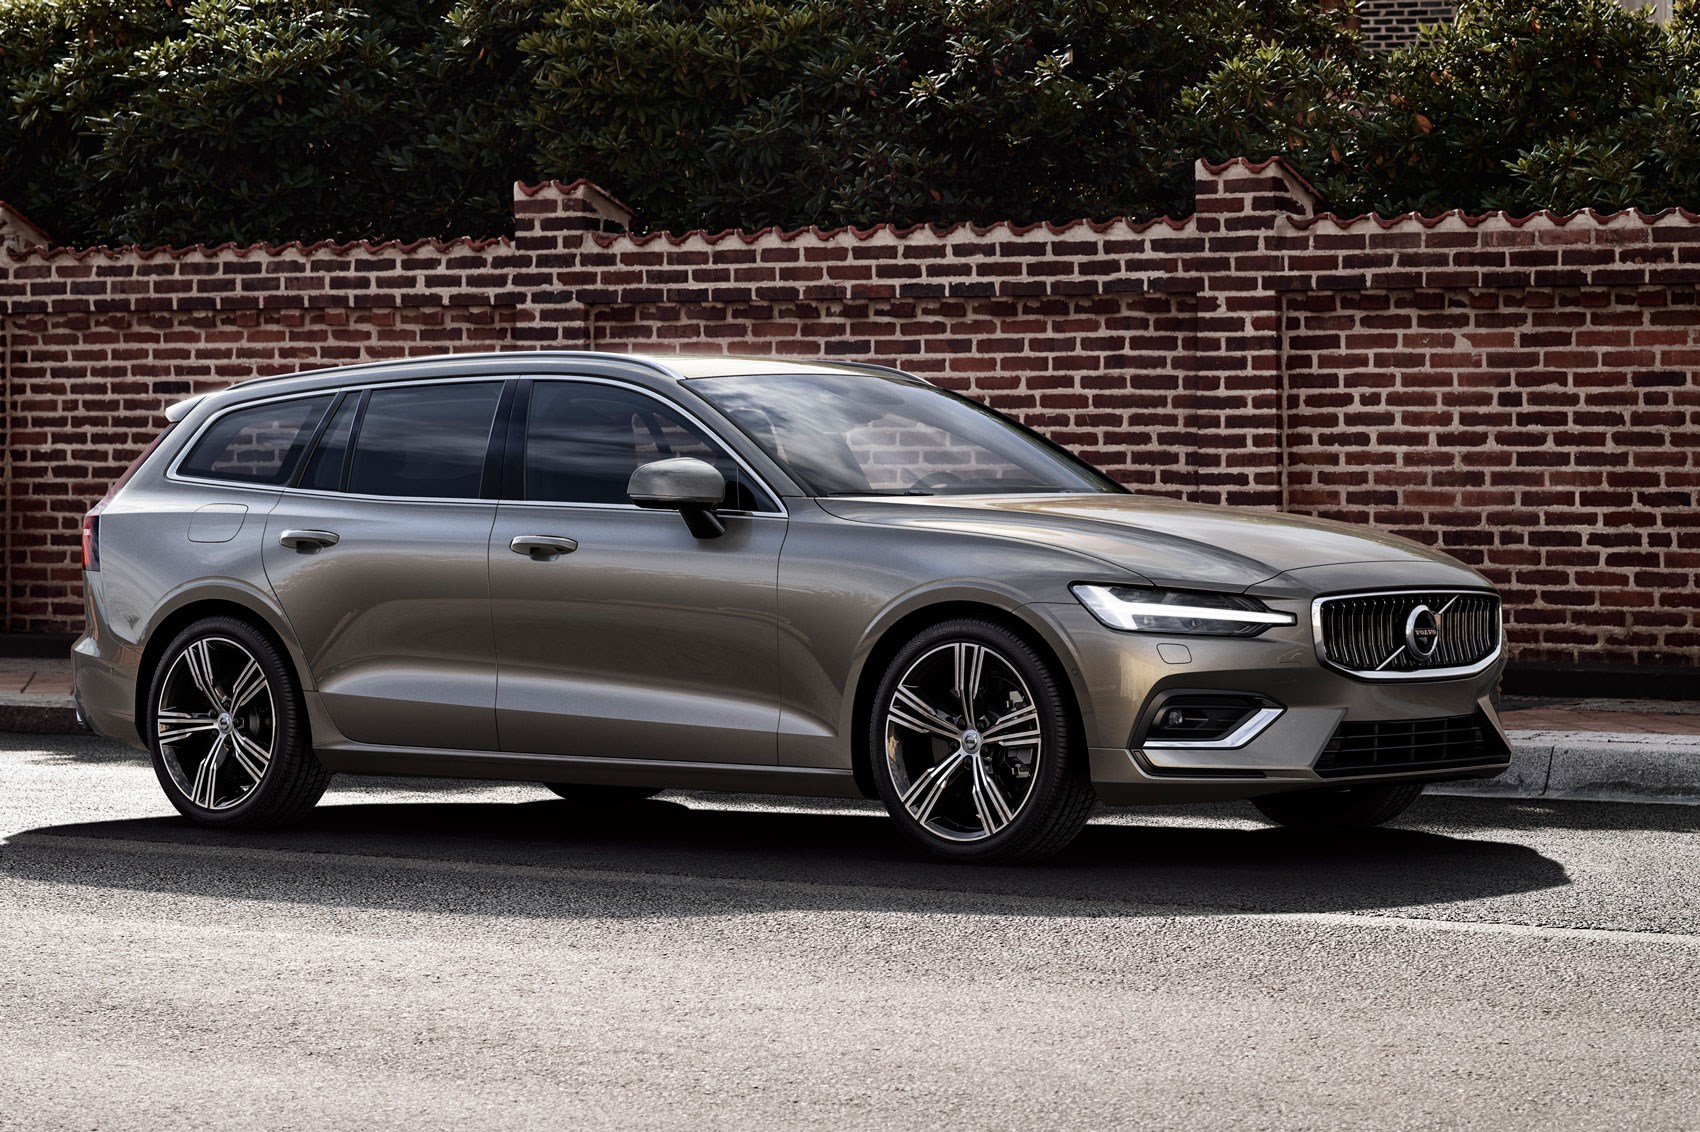 volvo v60 estate 2018 interior uk price and release. Black Bedroom Furniture Sets. Home Design Ideas